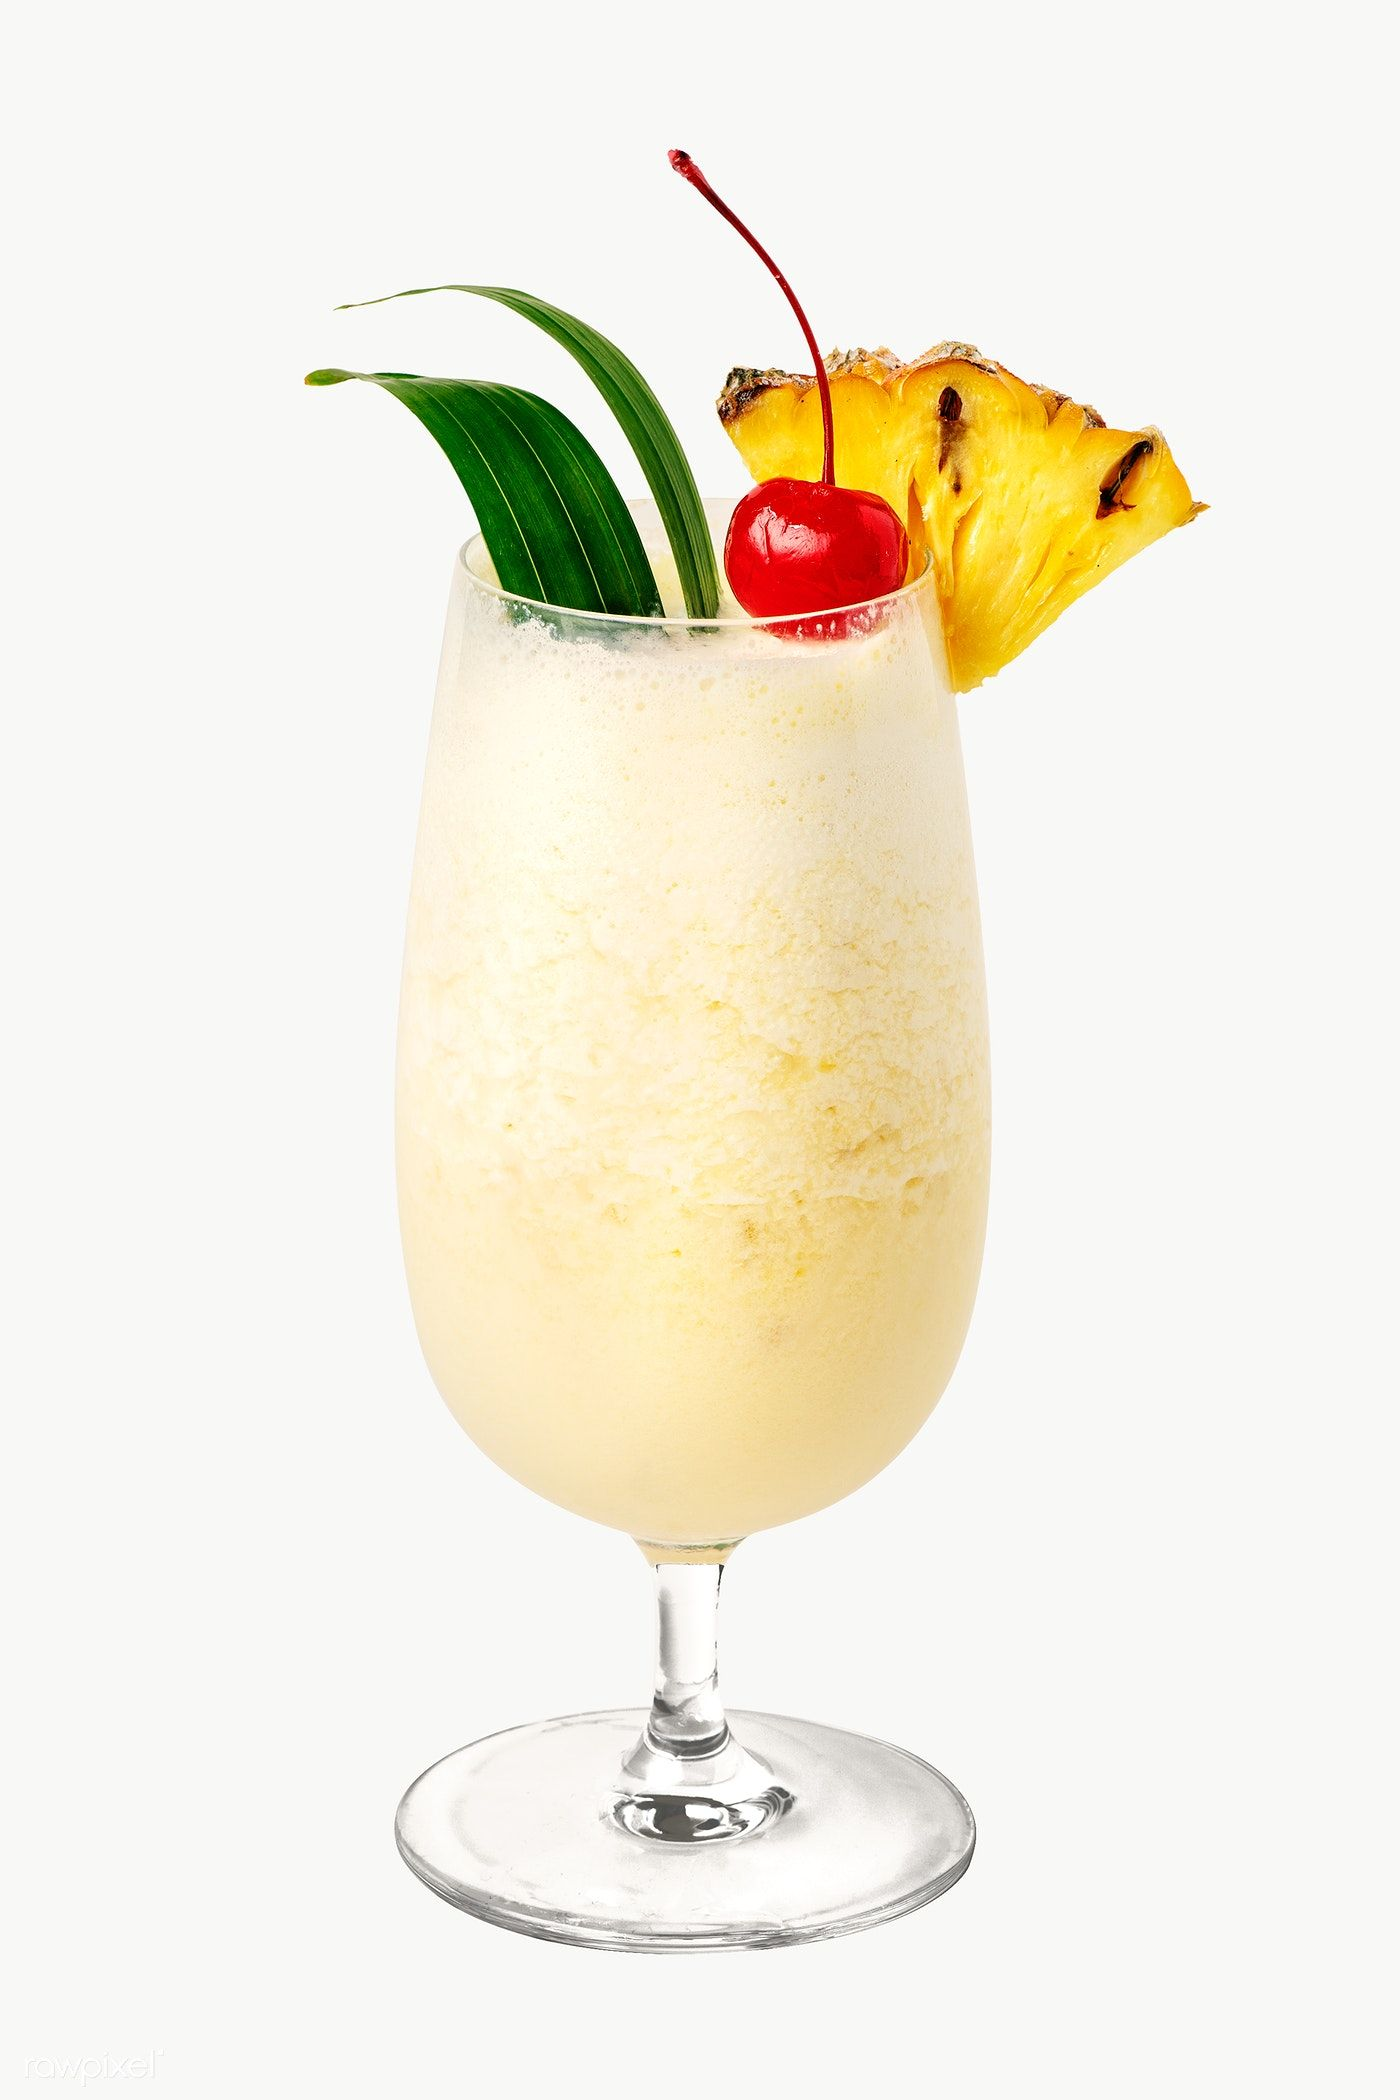 Download Premium Png Of Pina Colada With Pineapple And Cherry On Top